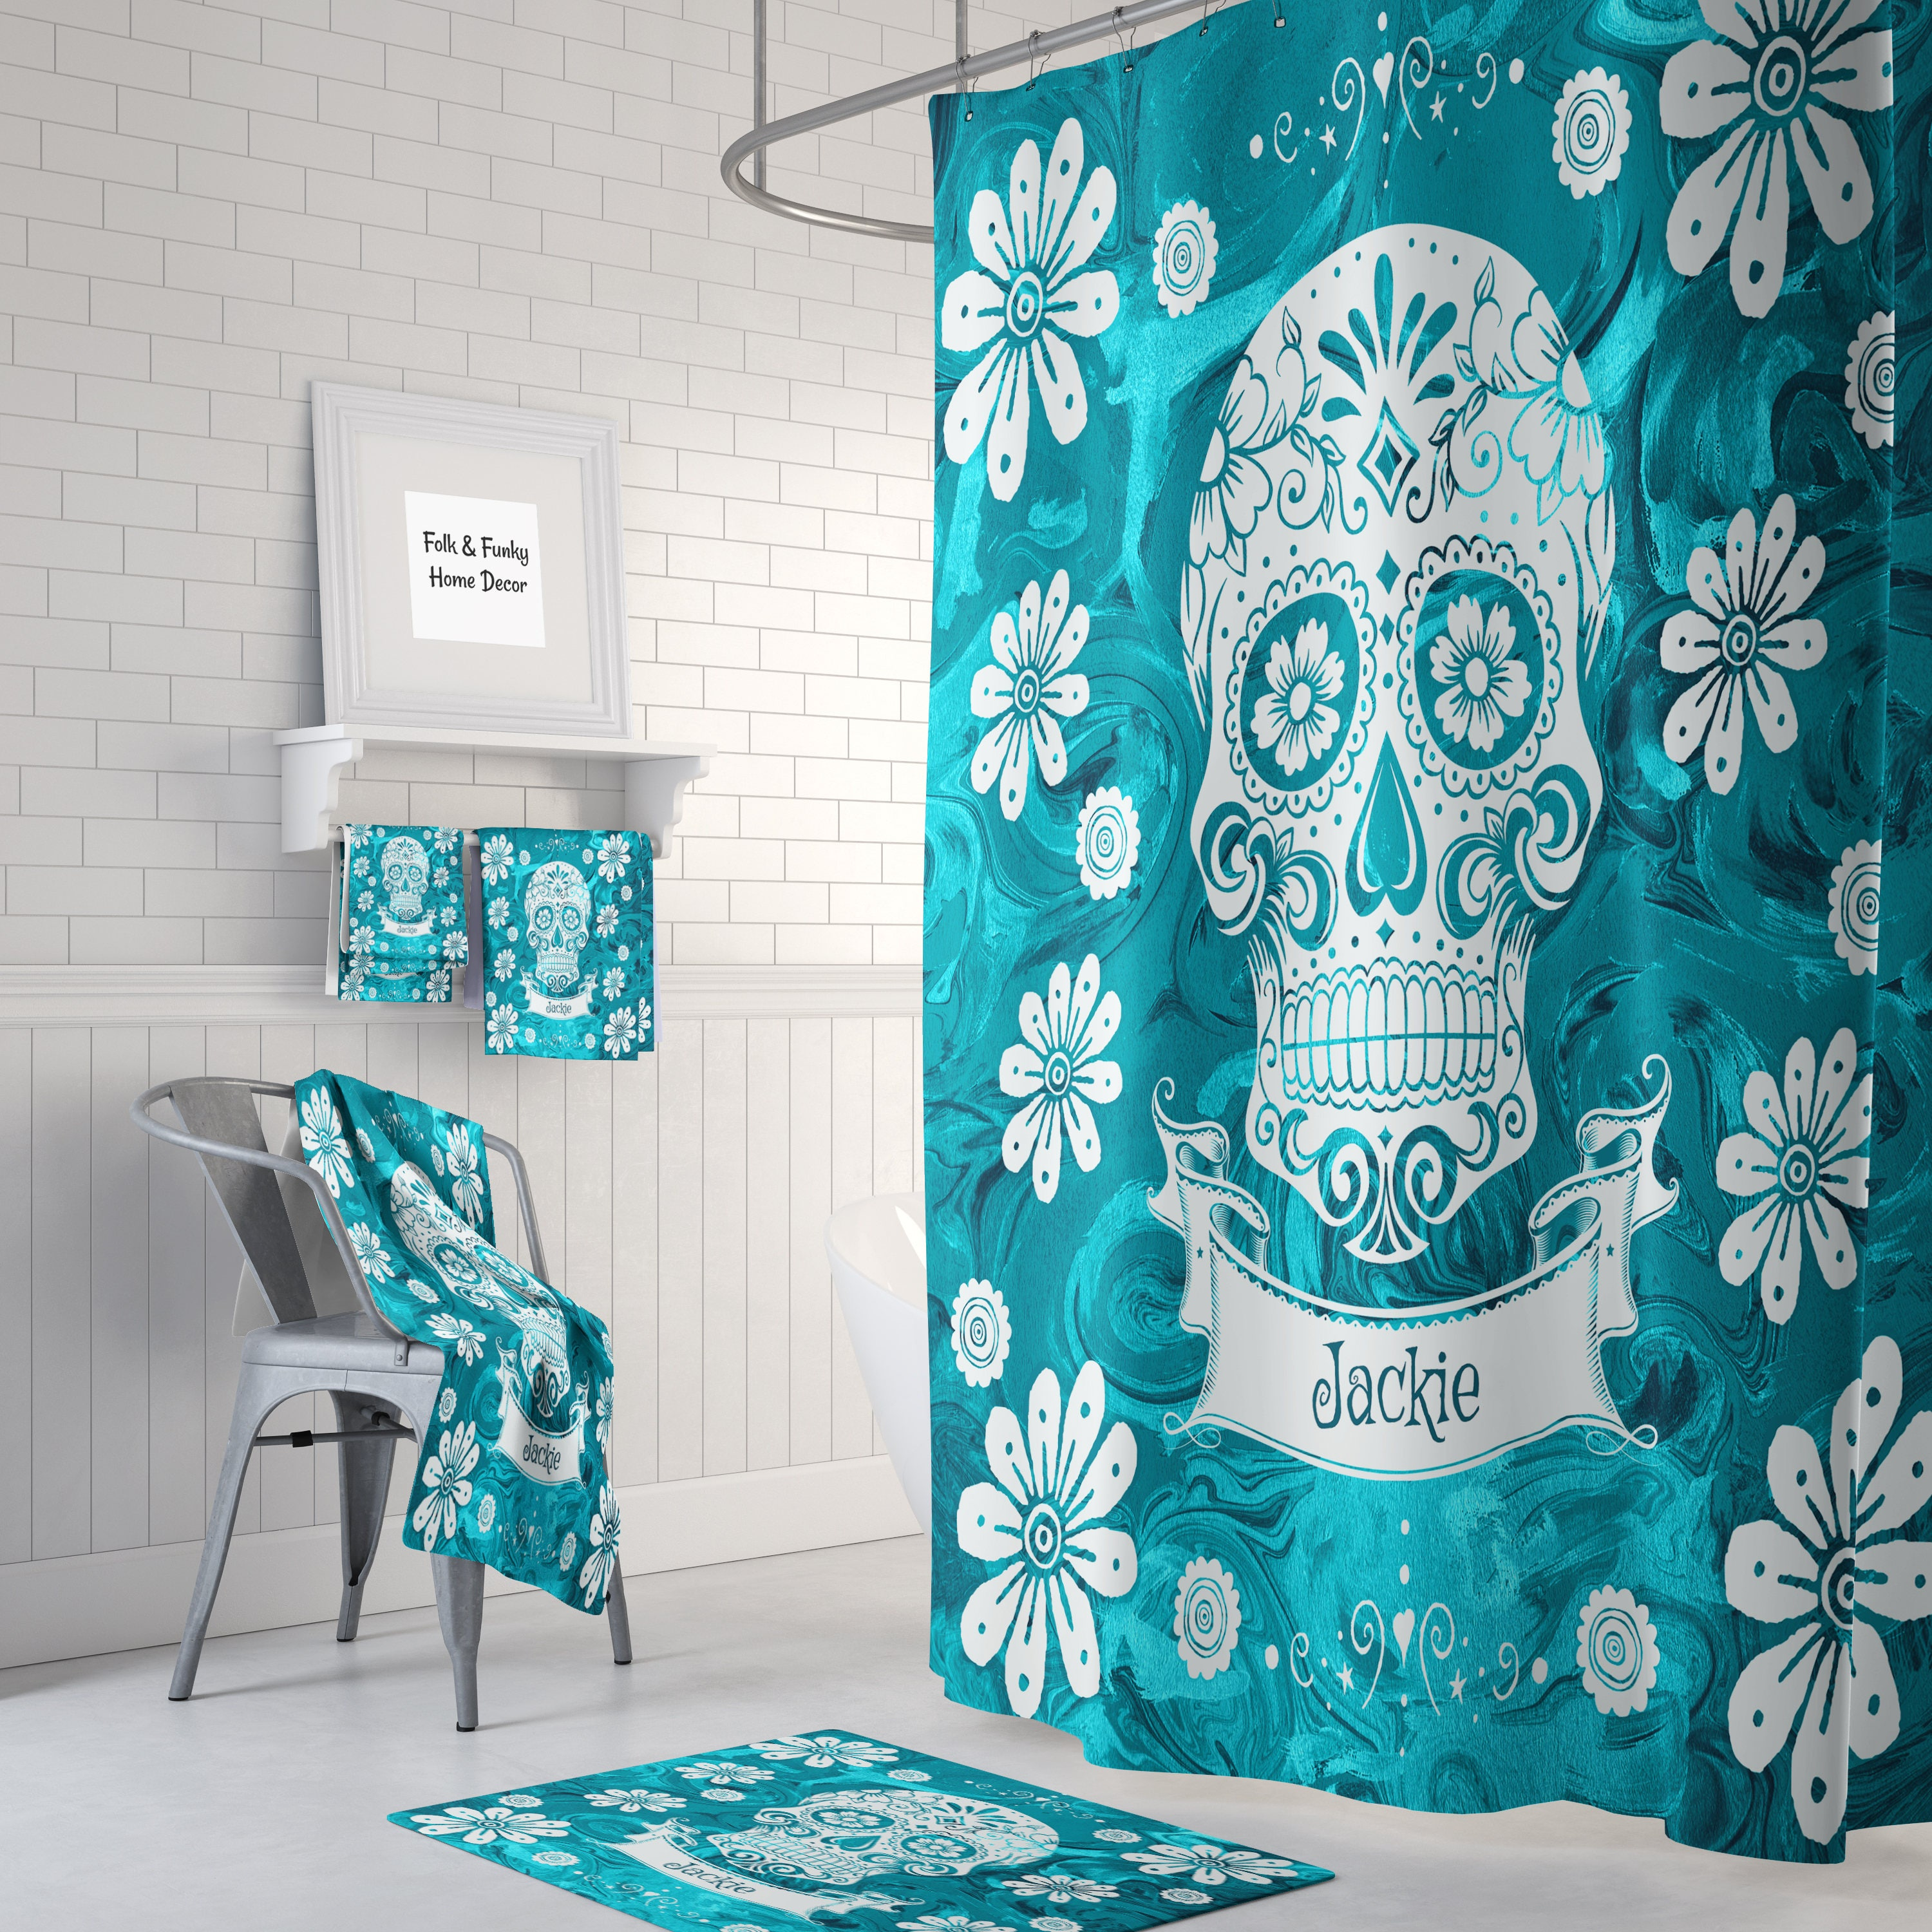 Sugar Skull Bathroom - talentneeds.com -